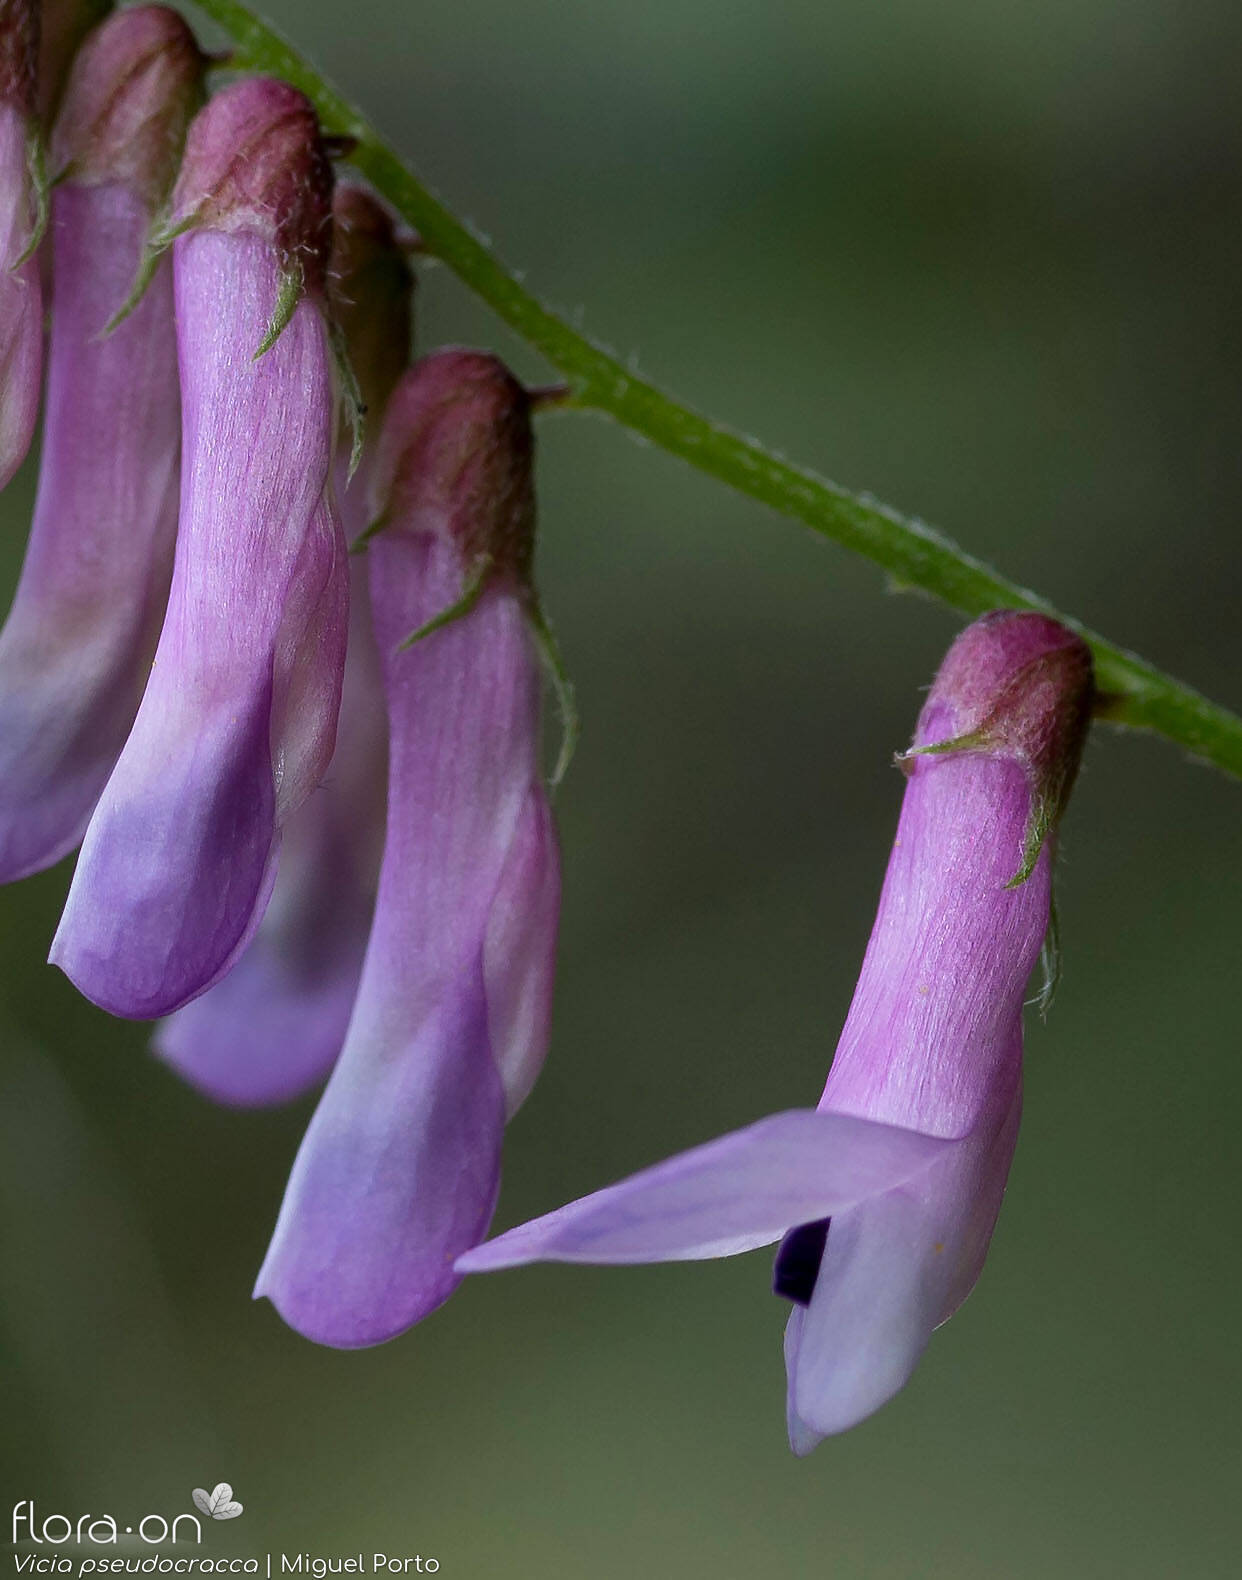 Vicia pseudocracca - Flor (close-up) | Miguel Porto; CC BY-NC 4.0